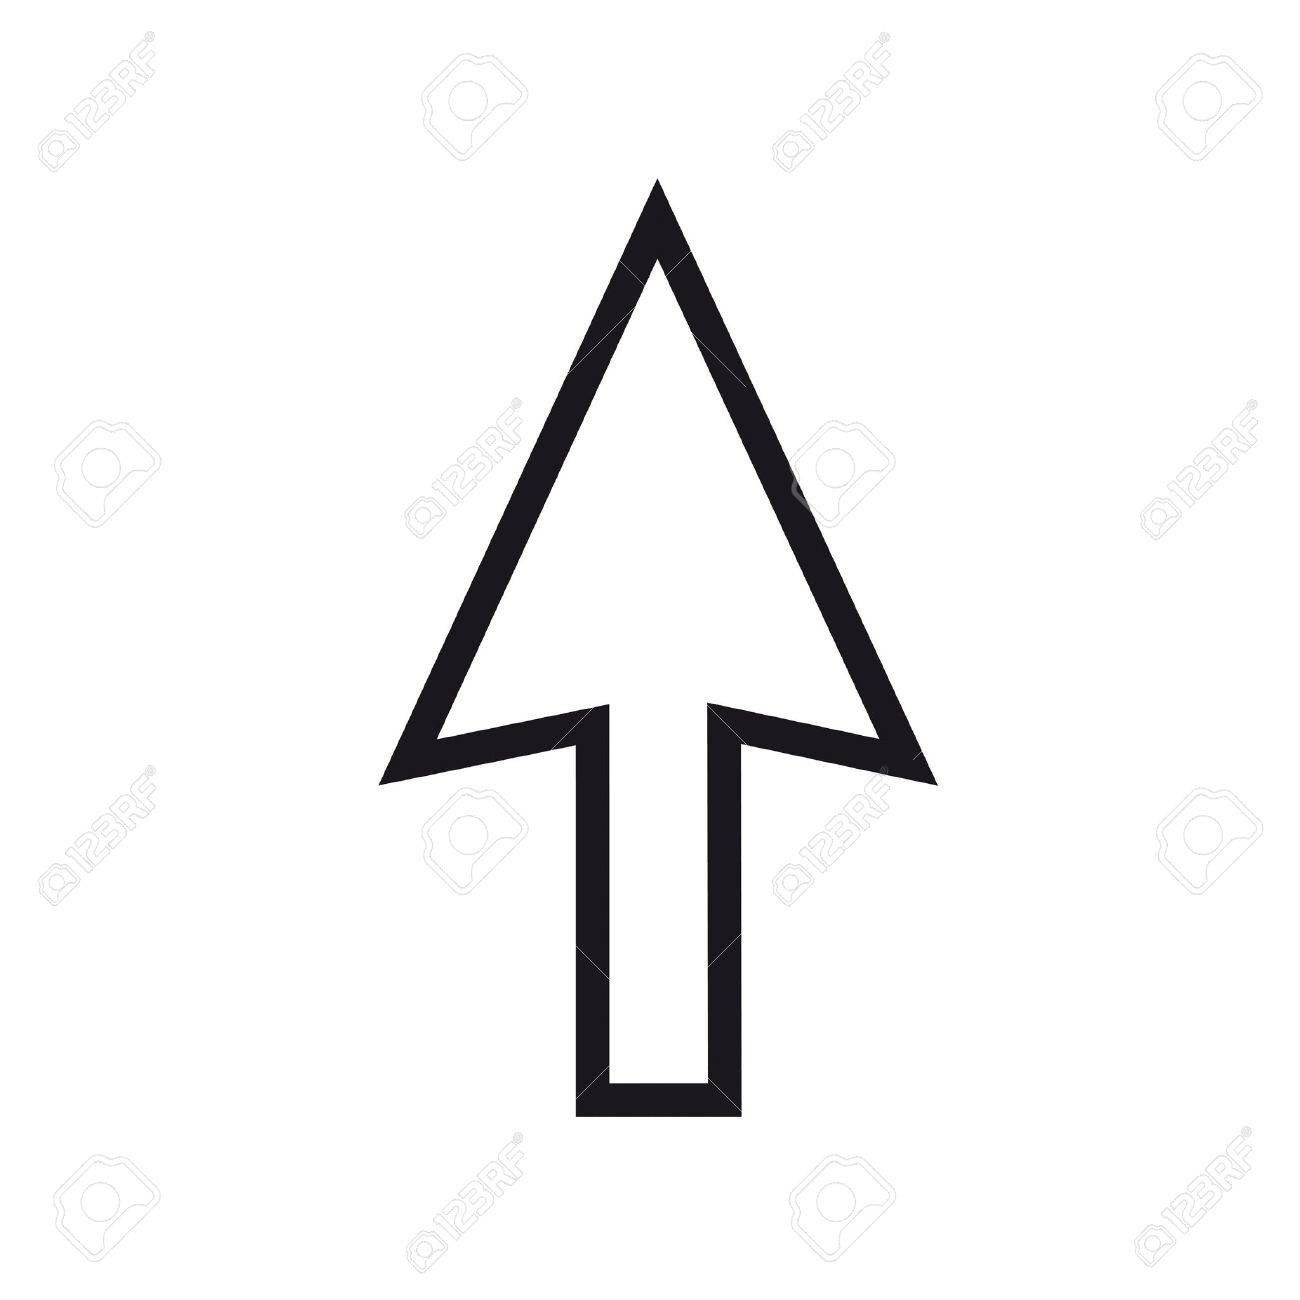 white vector mouse cursor royalty free cliparts vectors and stock rh 123rf com mouse pointer arrow vector mouse pointer arrow vector